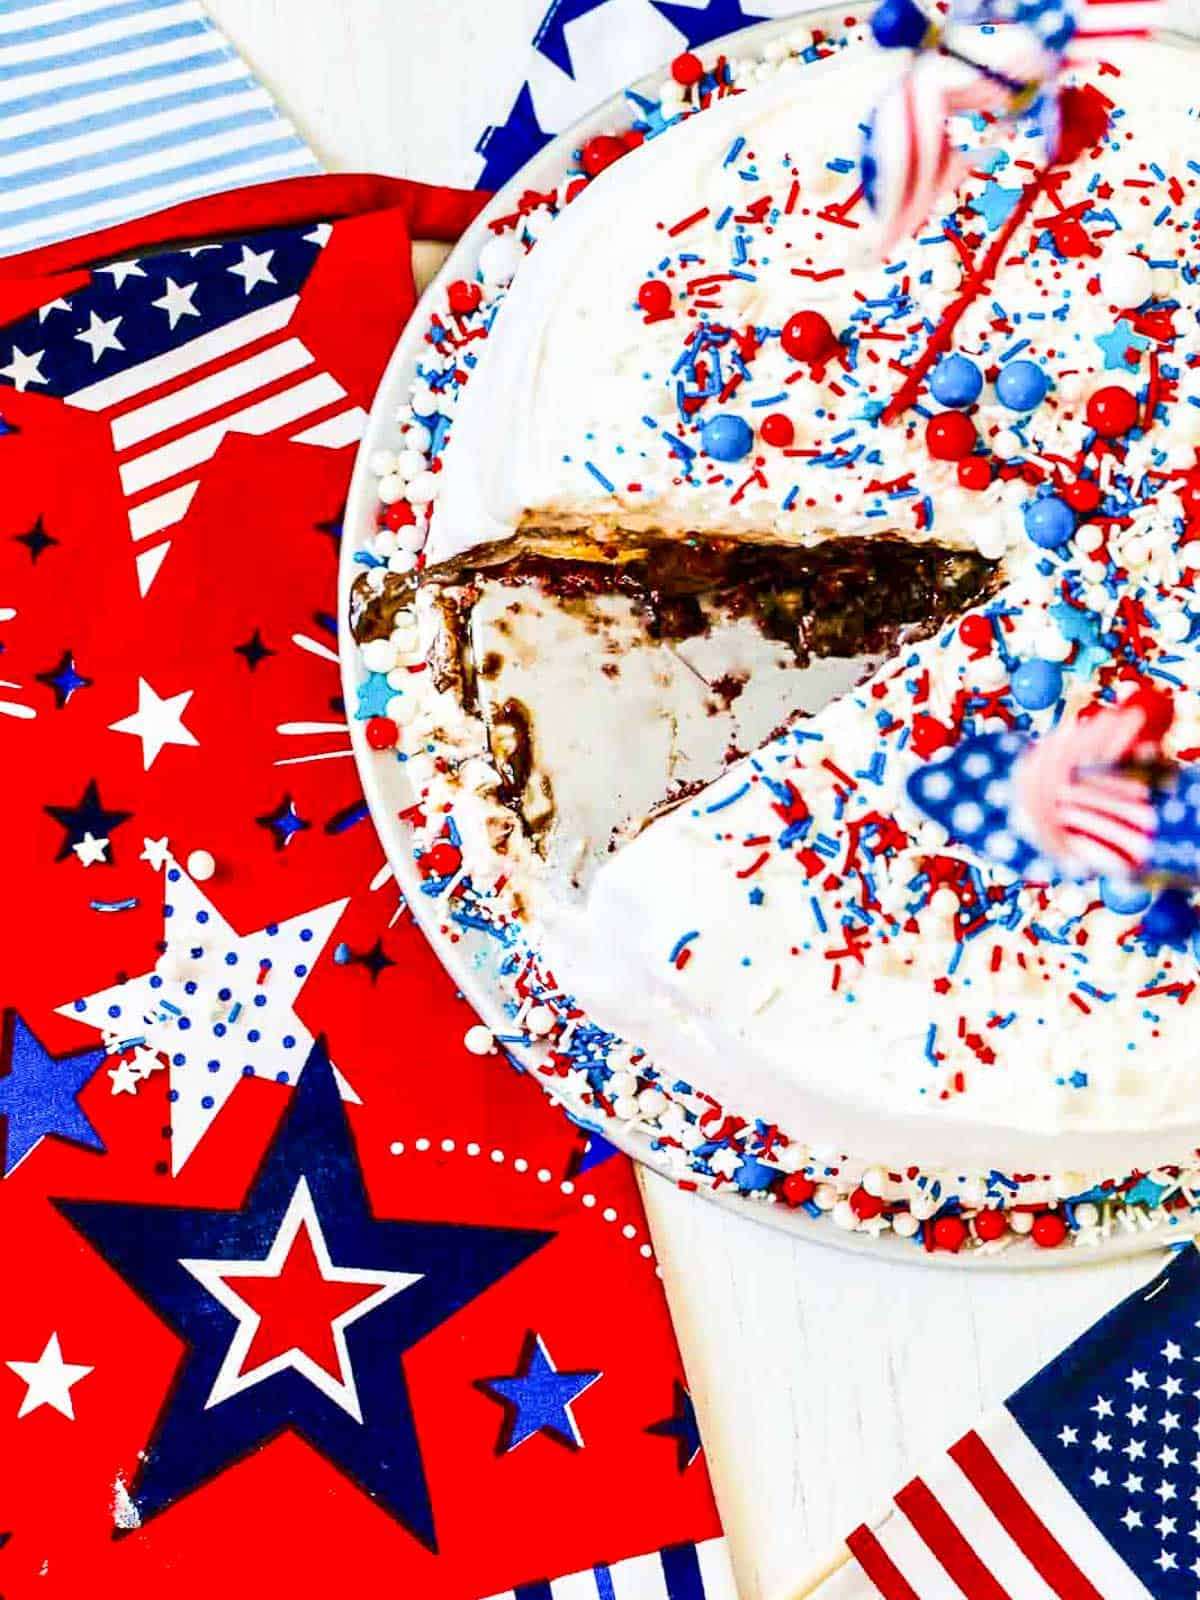 An ice cream cake for July 4th with a slice cut out of it on a patriotic red, white, and blue star tablecloth.